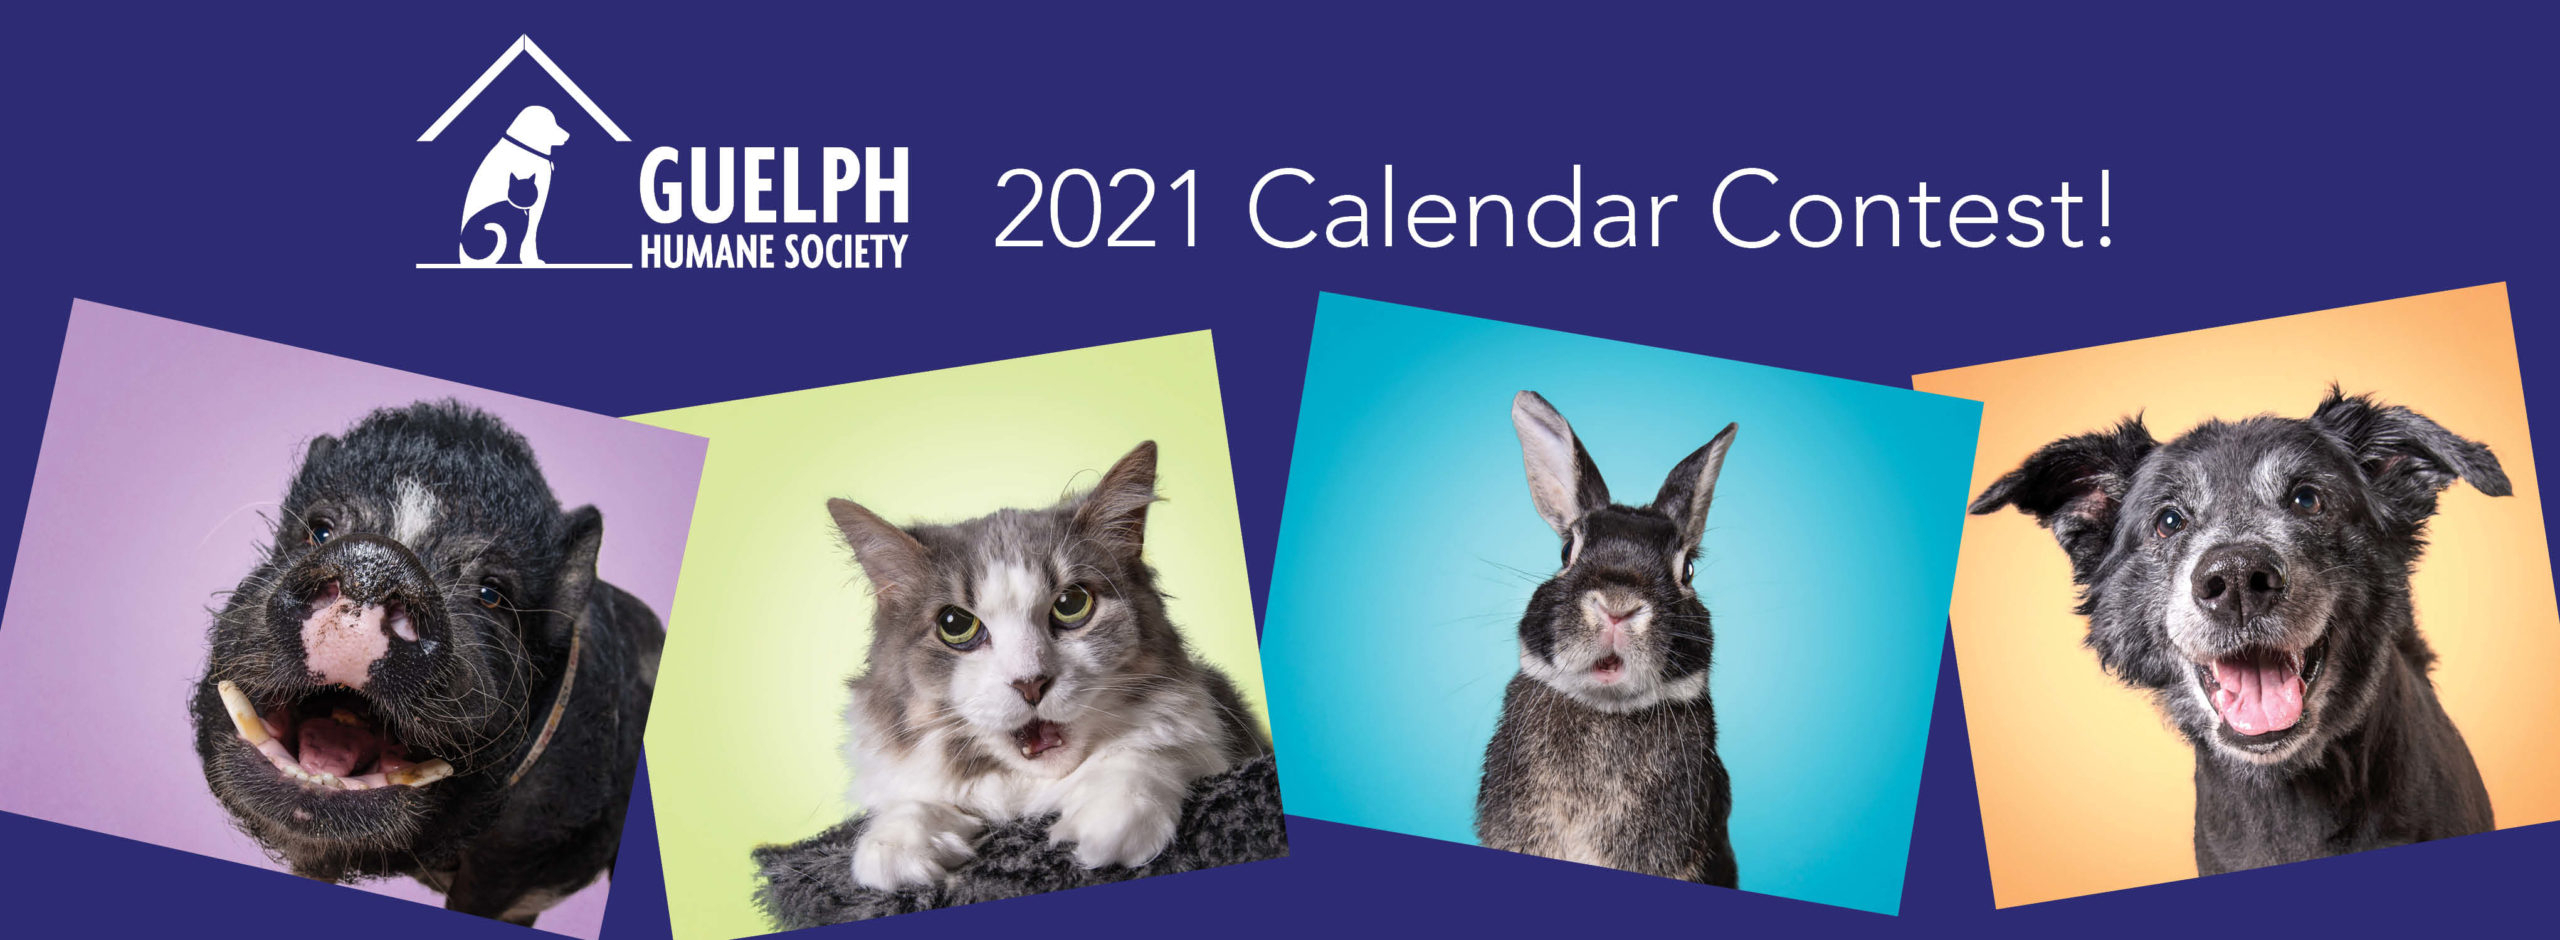 2021 Ghs Calendar Contest Month Of April Guelph Humane